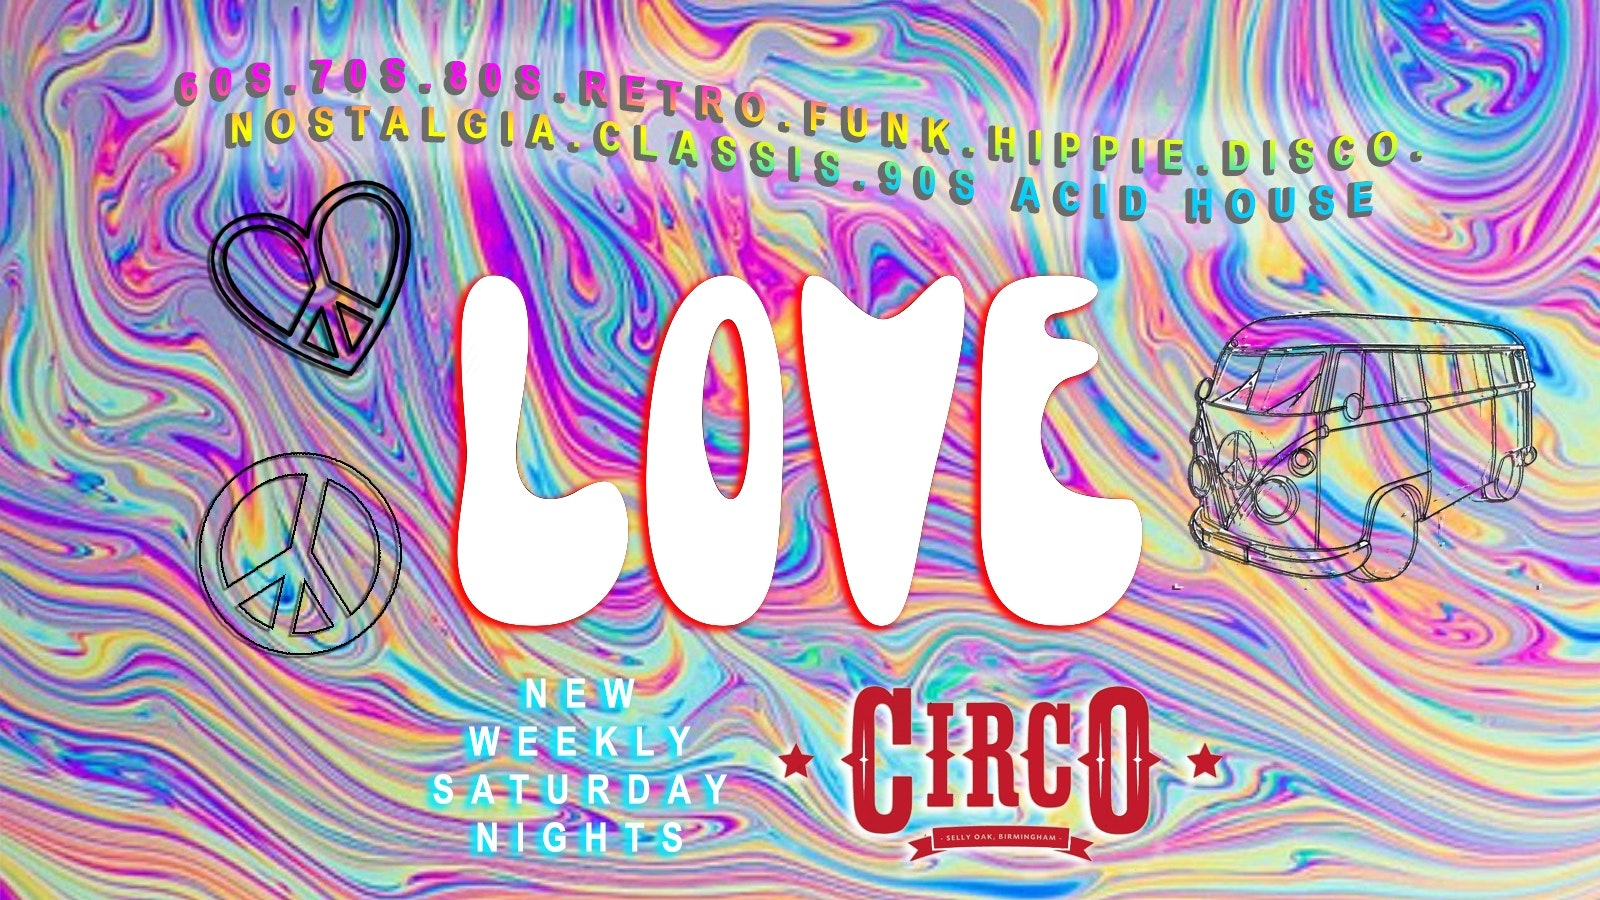 LOVE: Halloween Psychedelic Disco (Part 2) – Saturdays at Circo (Selly Oak) – £1 Entry guestlist!